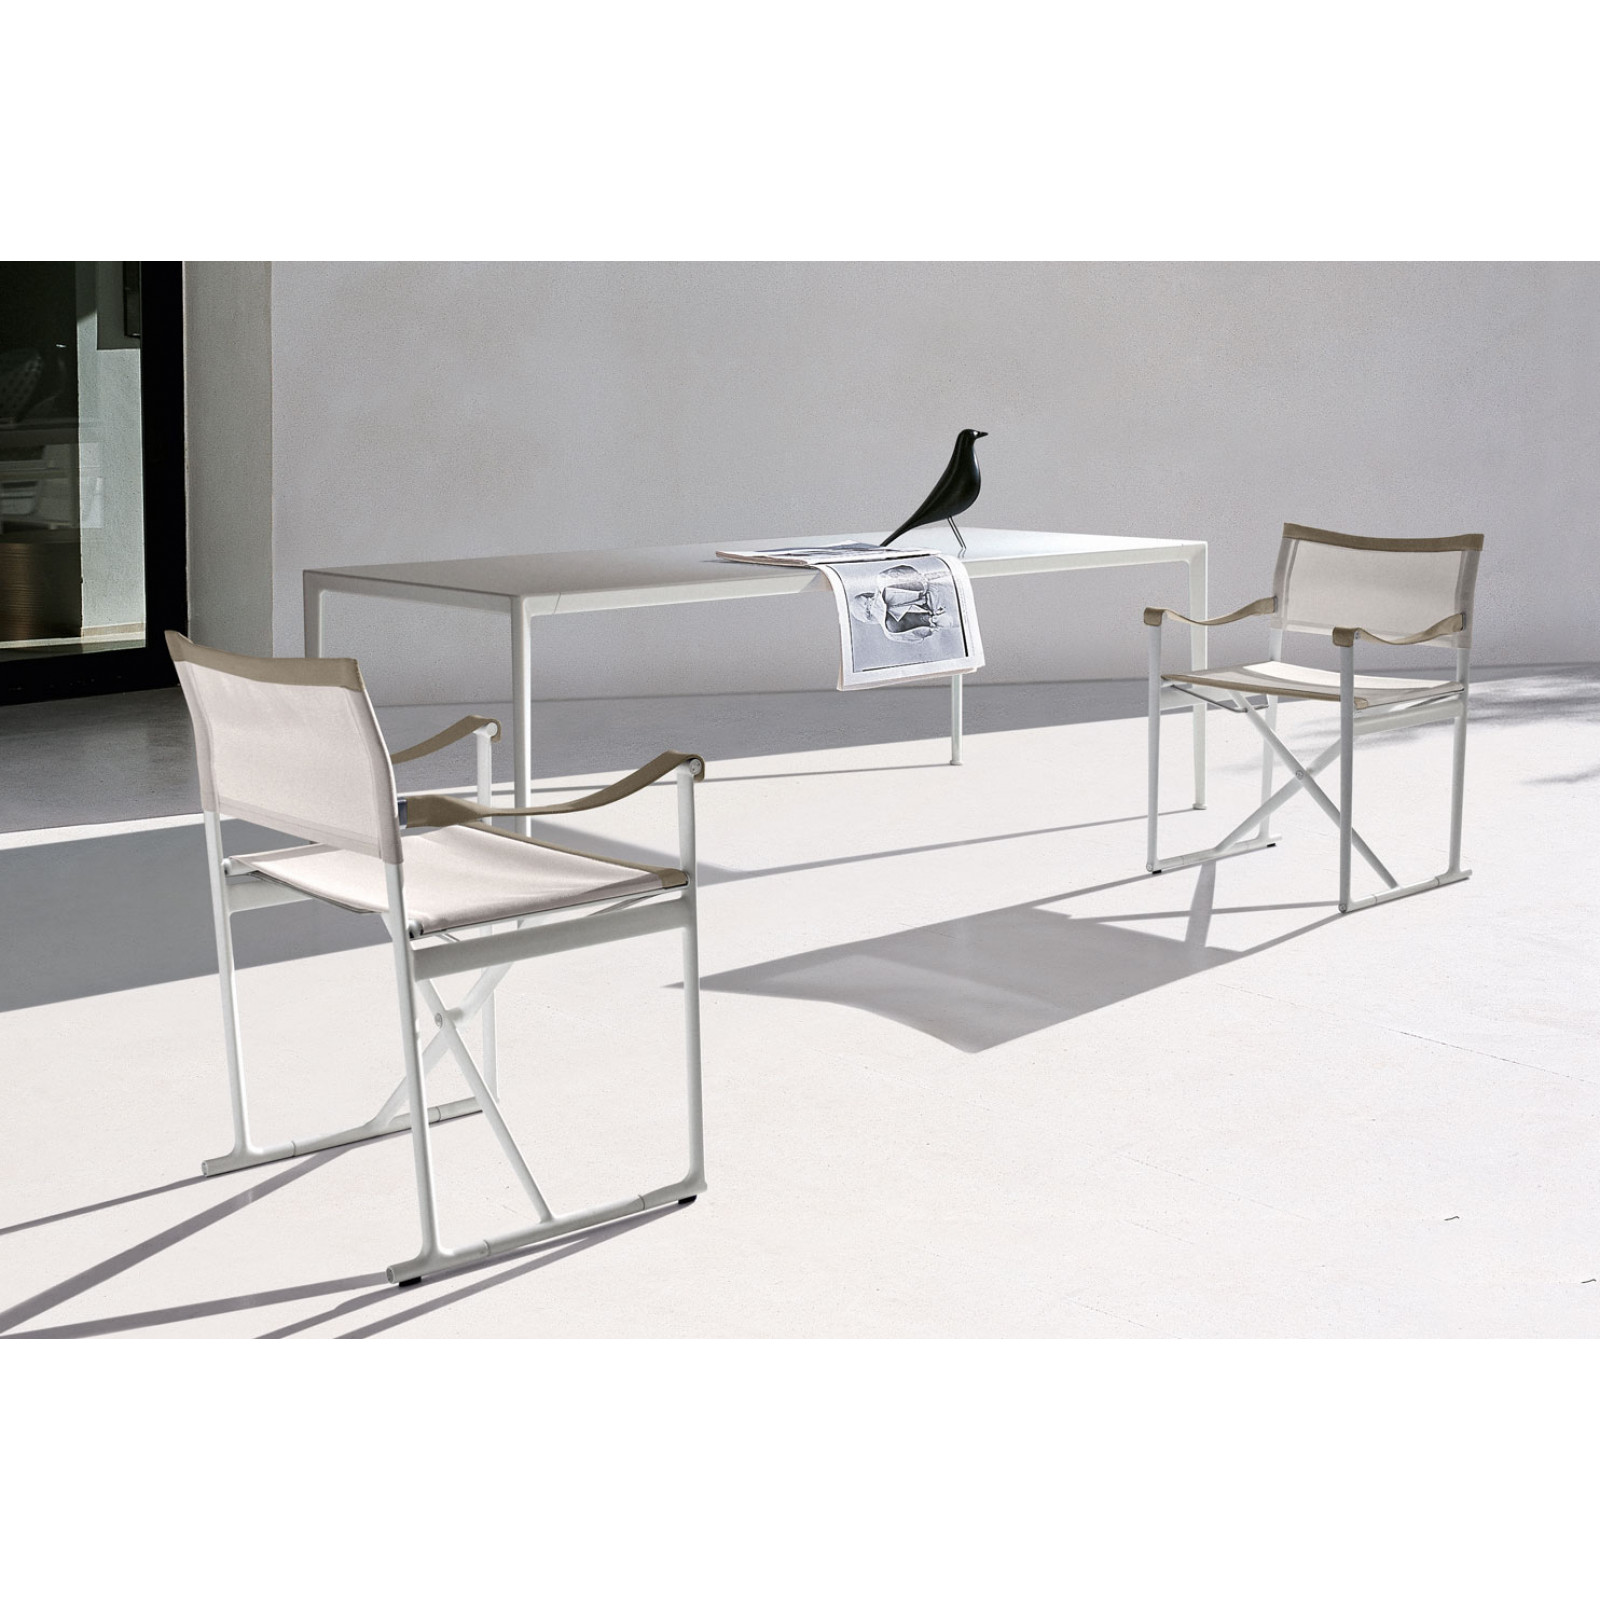 B&B Italia Mirto Outdoor Essgruppe